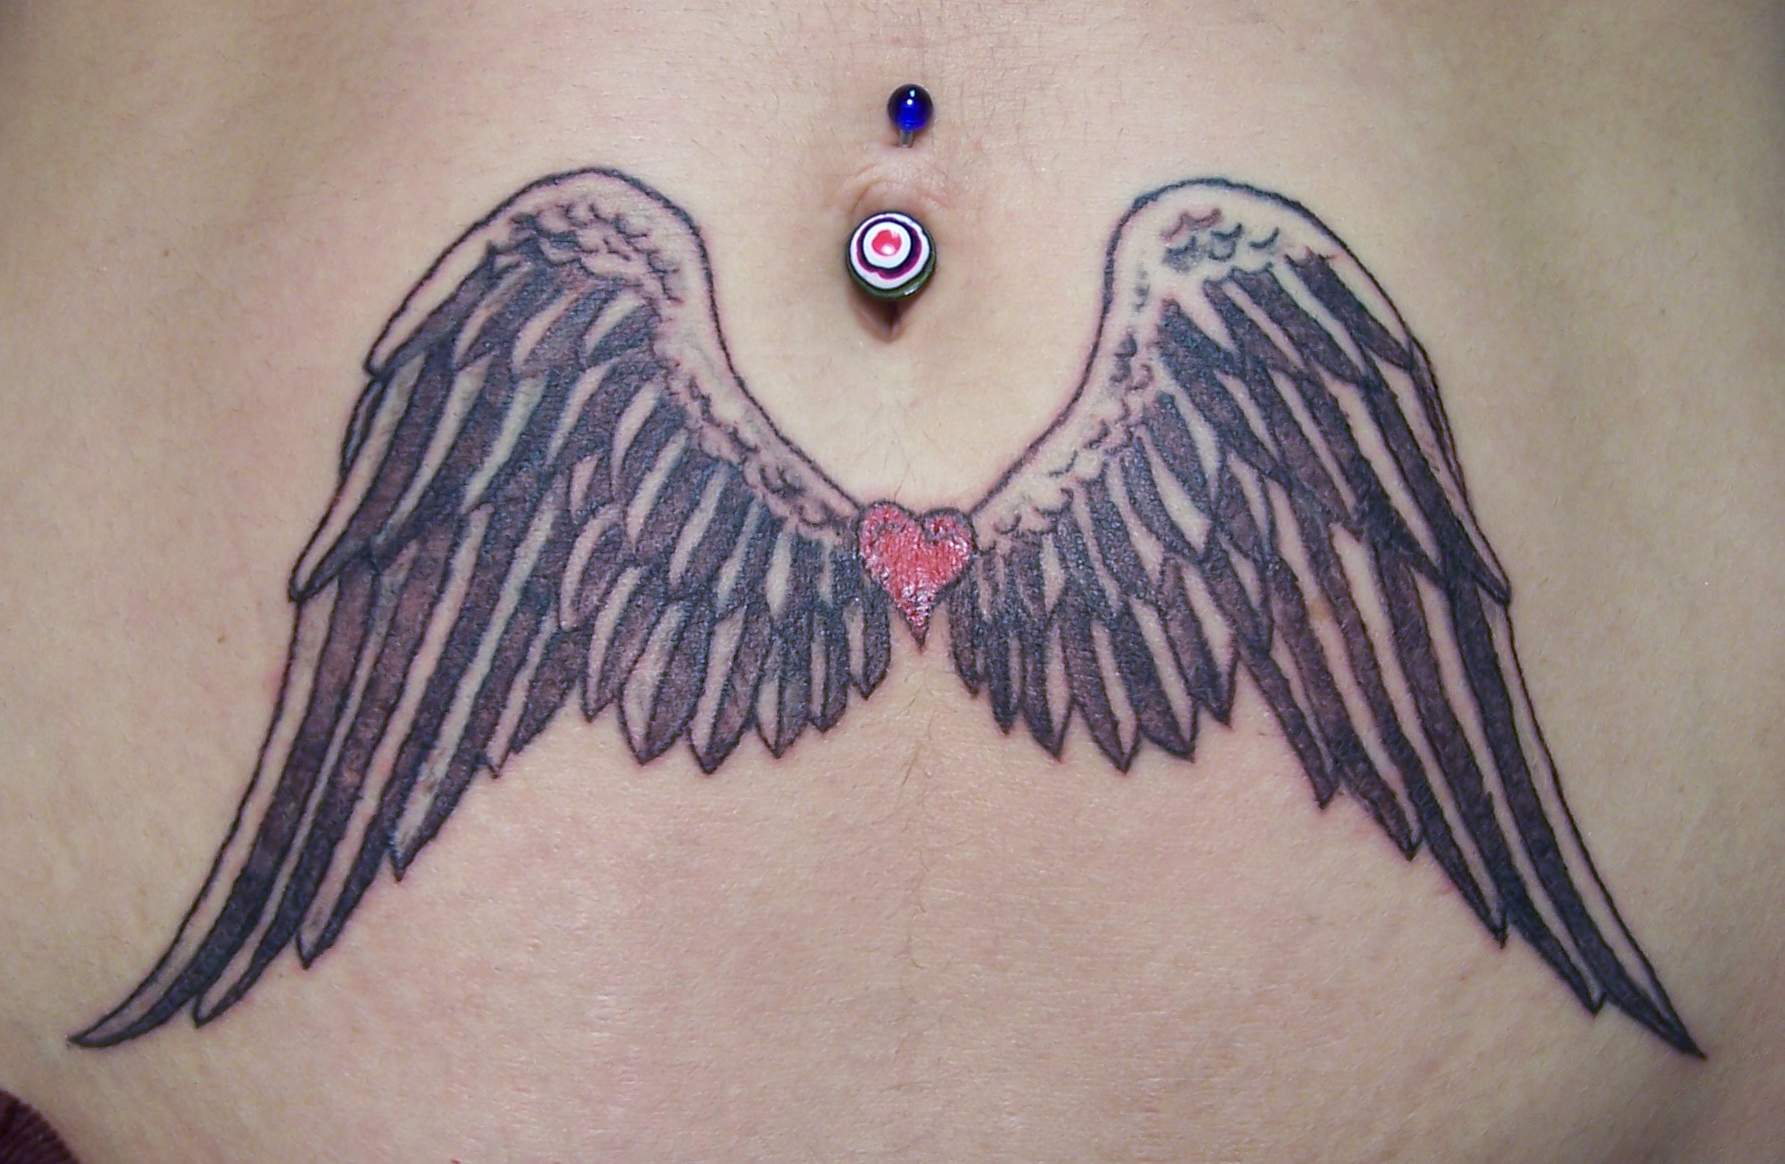 Angel Wings On Stomach Tattoo